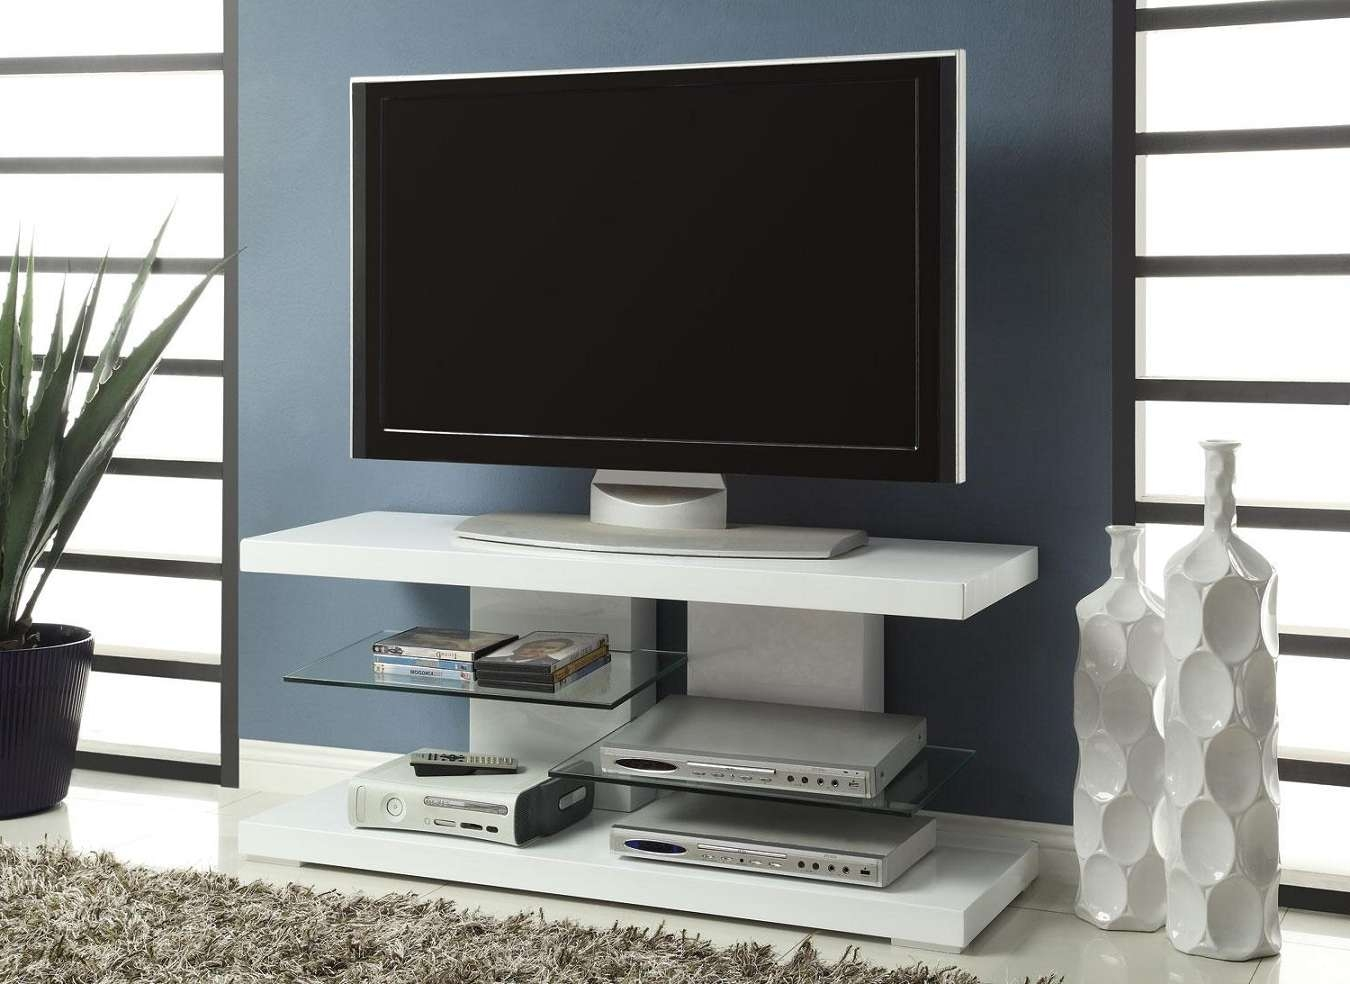 White Painted Plywood Flat Screen Tv Stand With Tempered Glass With Regard To Contemporary Tv Stands For Flat Screens (View 20 of 20)